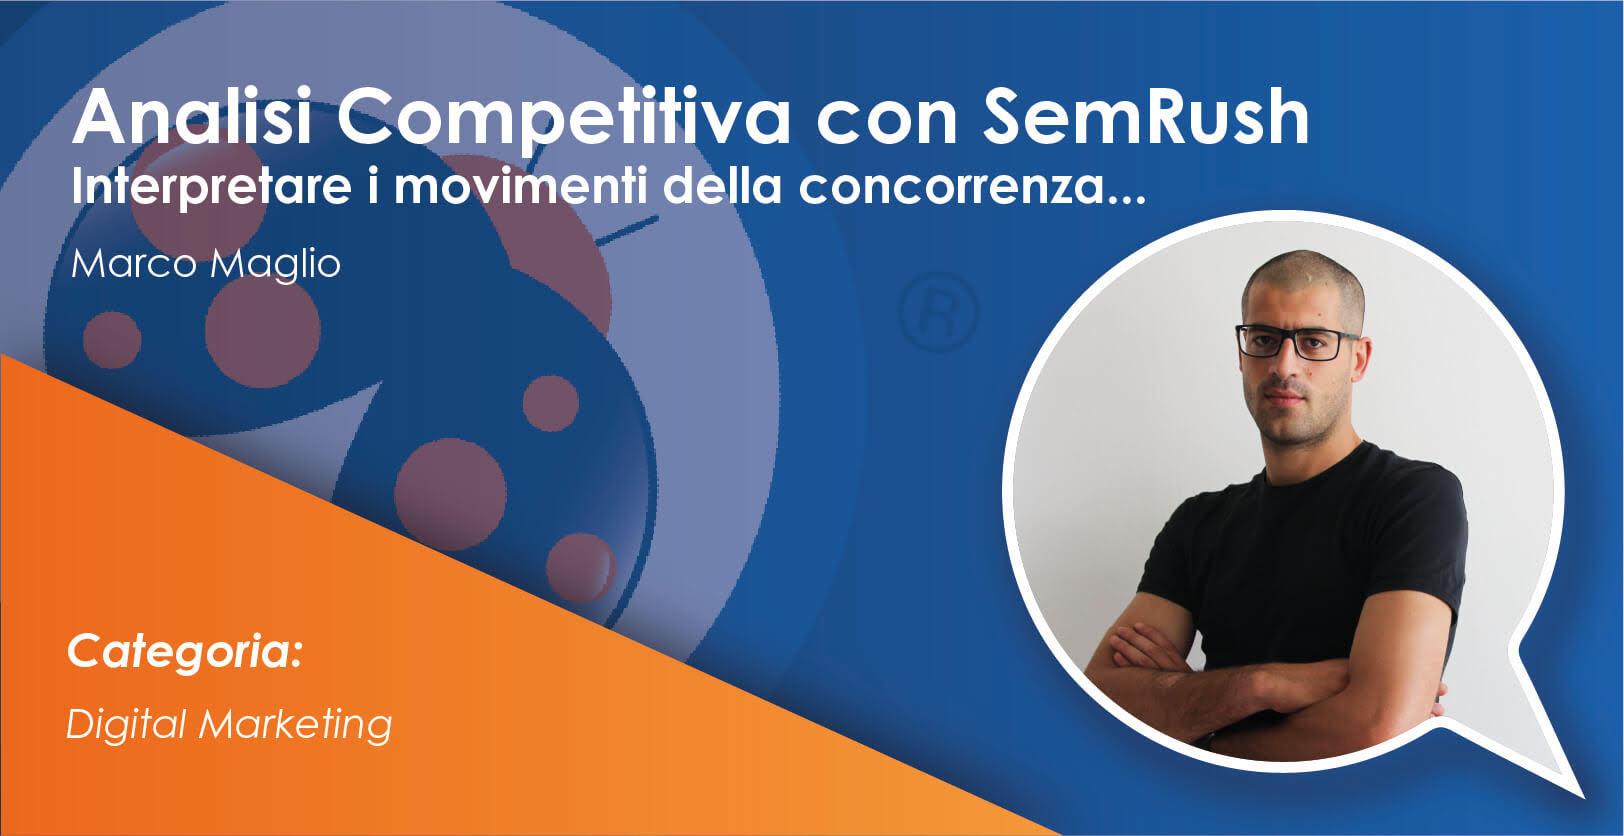 Analisi Competitiva con SemRush